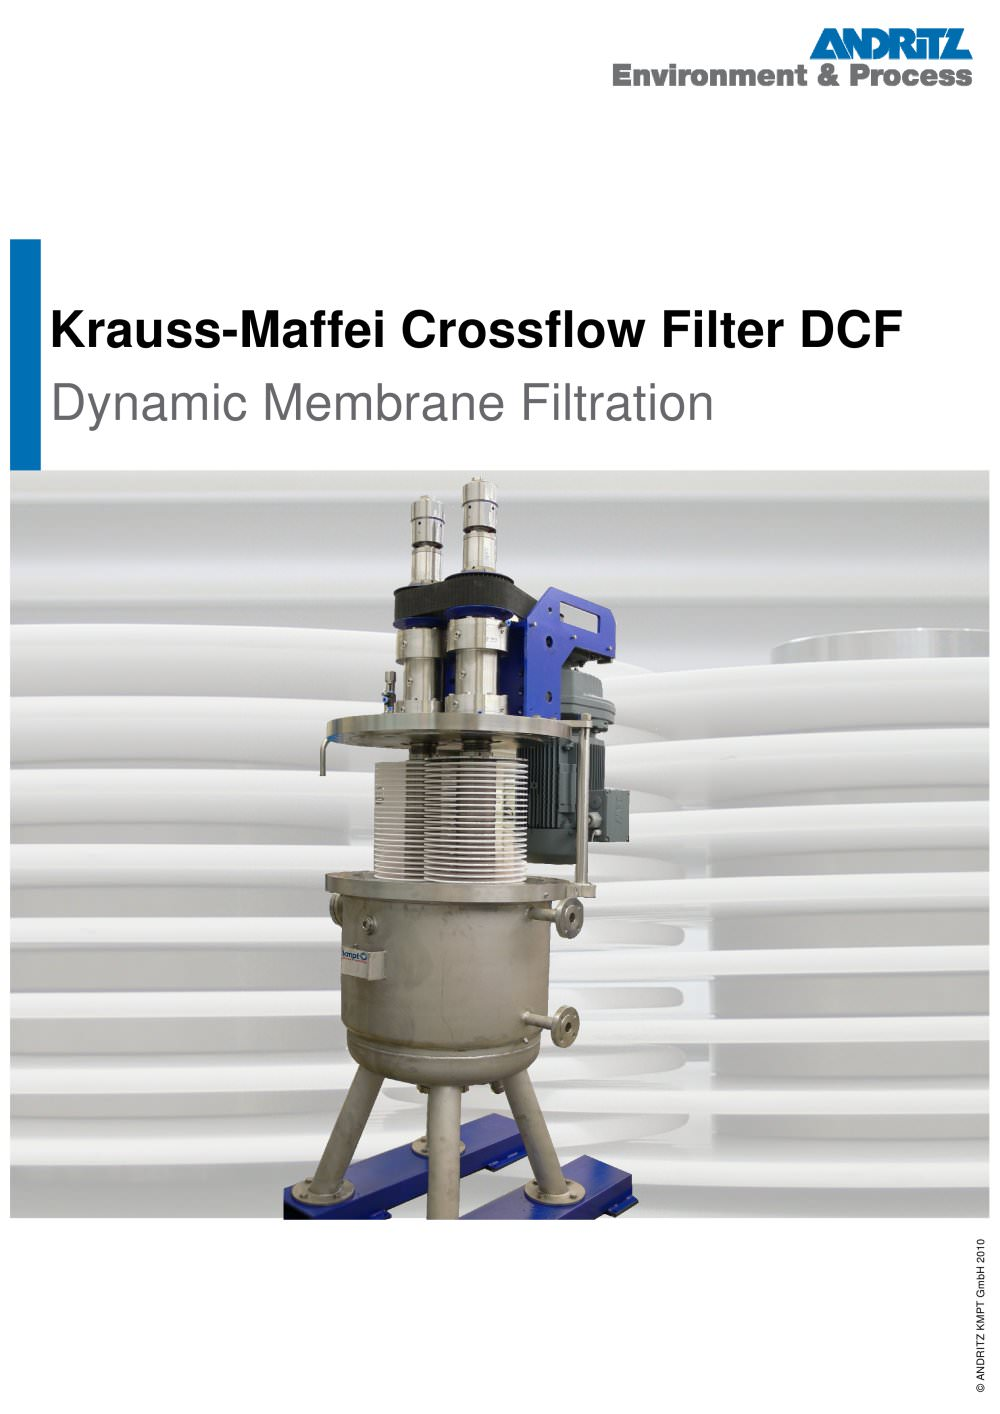 Krauss-Maffei Crossflow Filter DCF - ANDRITZ KMPT GmbH. See other catalogues for ANDRITZ KMPT GmbH. You may also be interested in